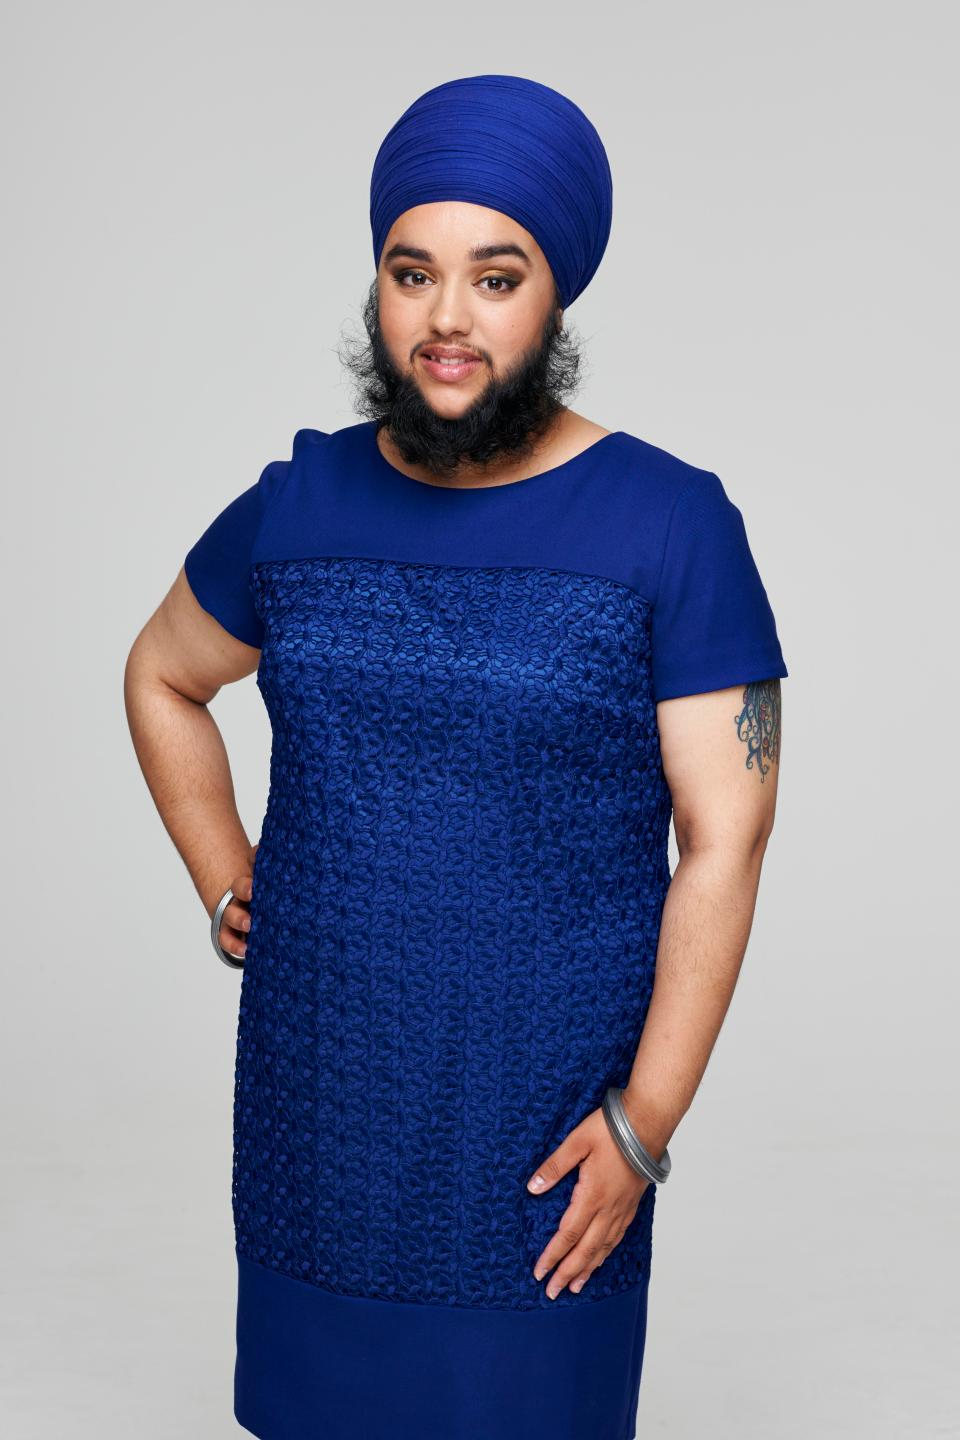 Harnaam Kaur, England's most publicized bearded woman-blind maiden - 1